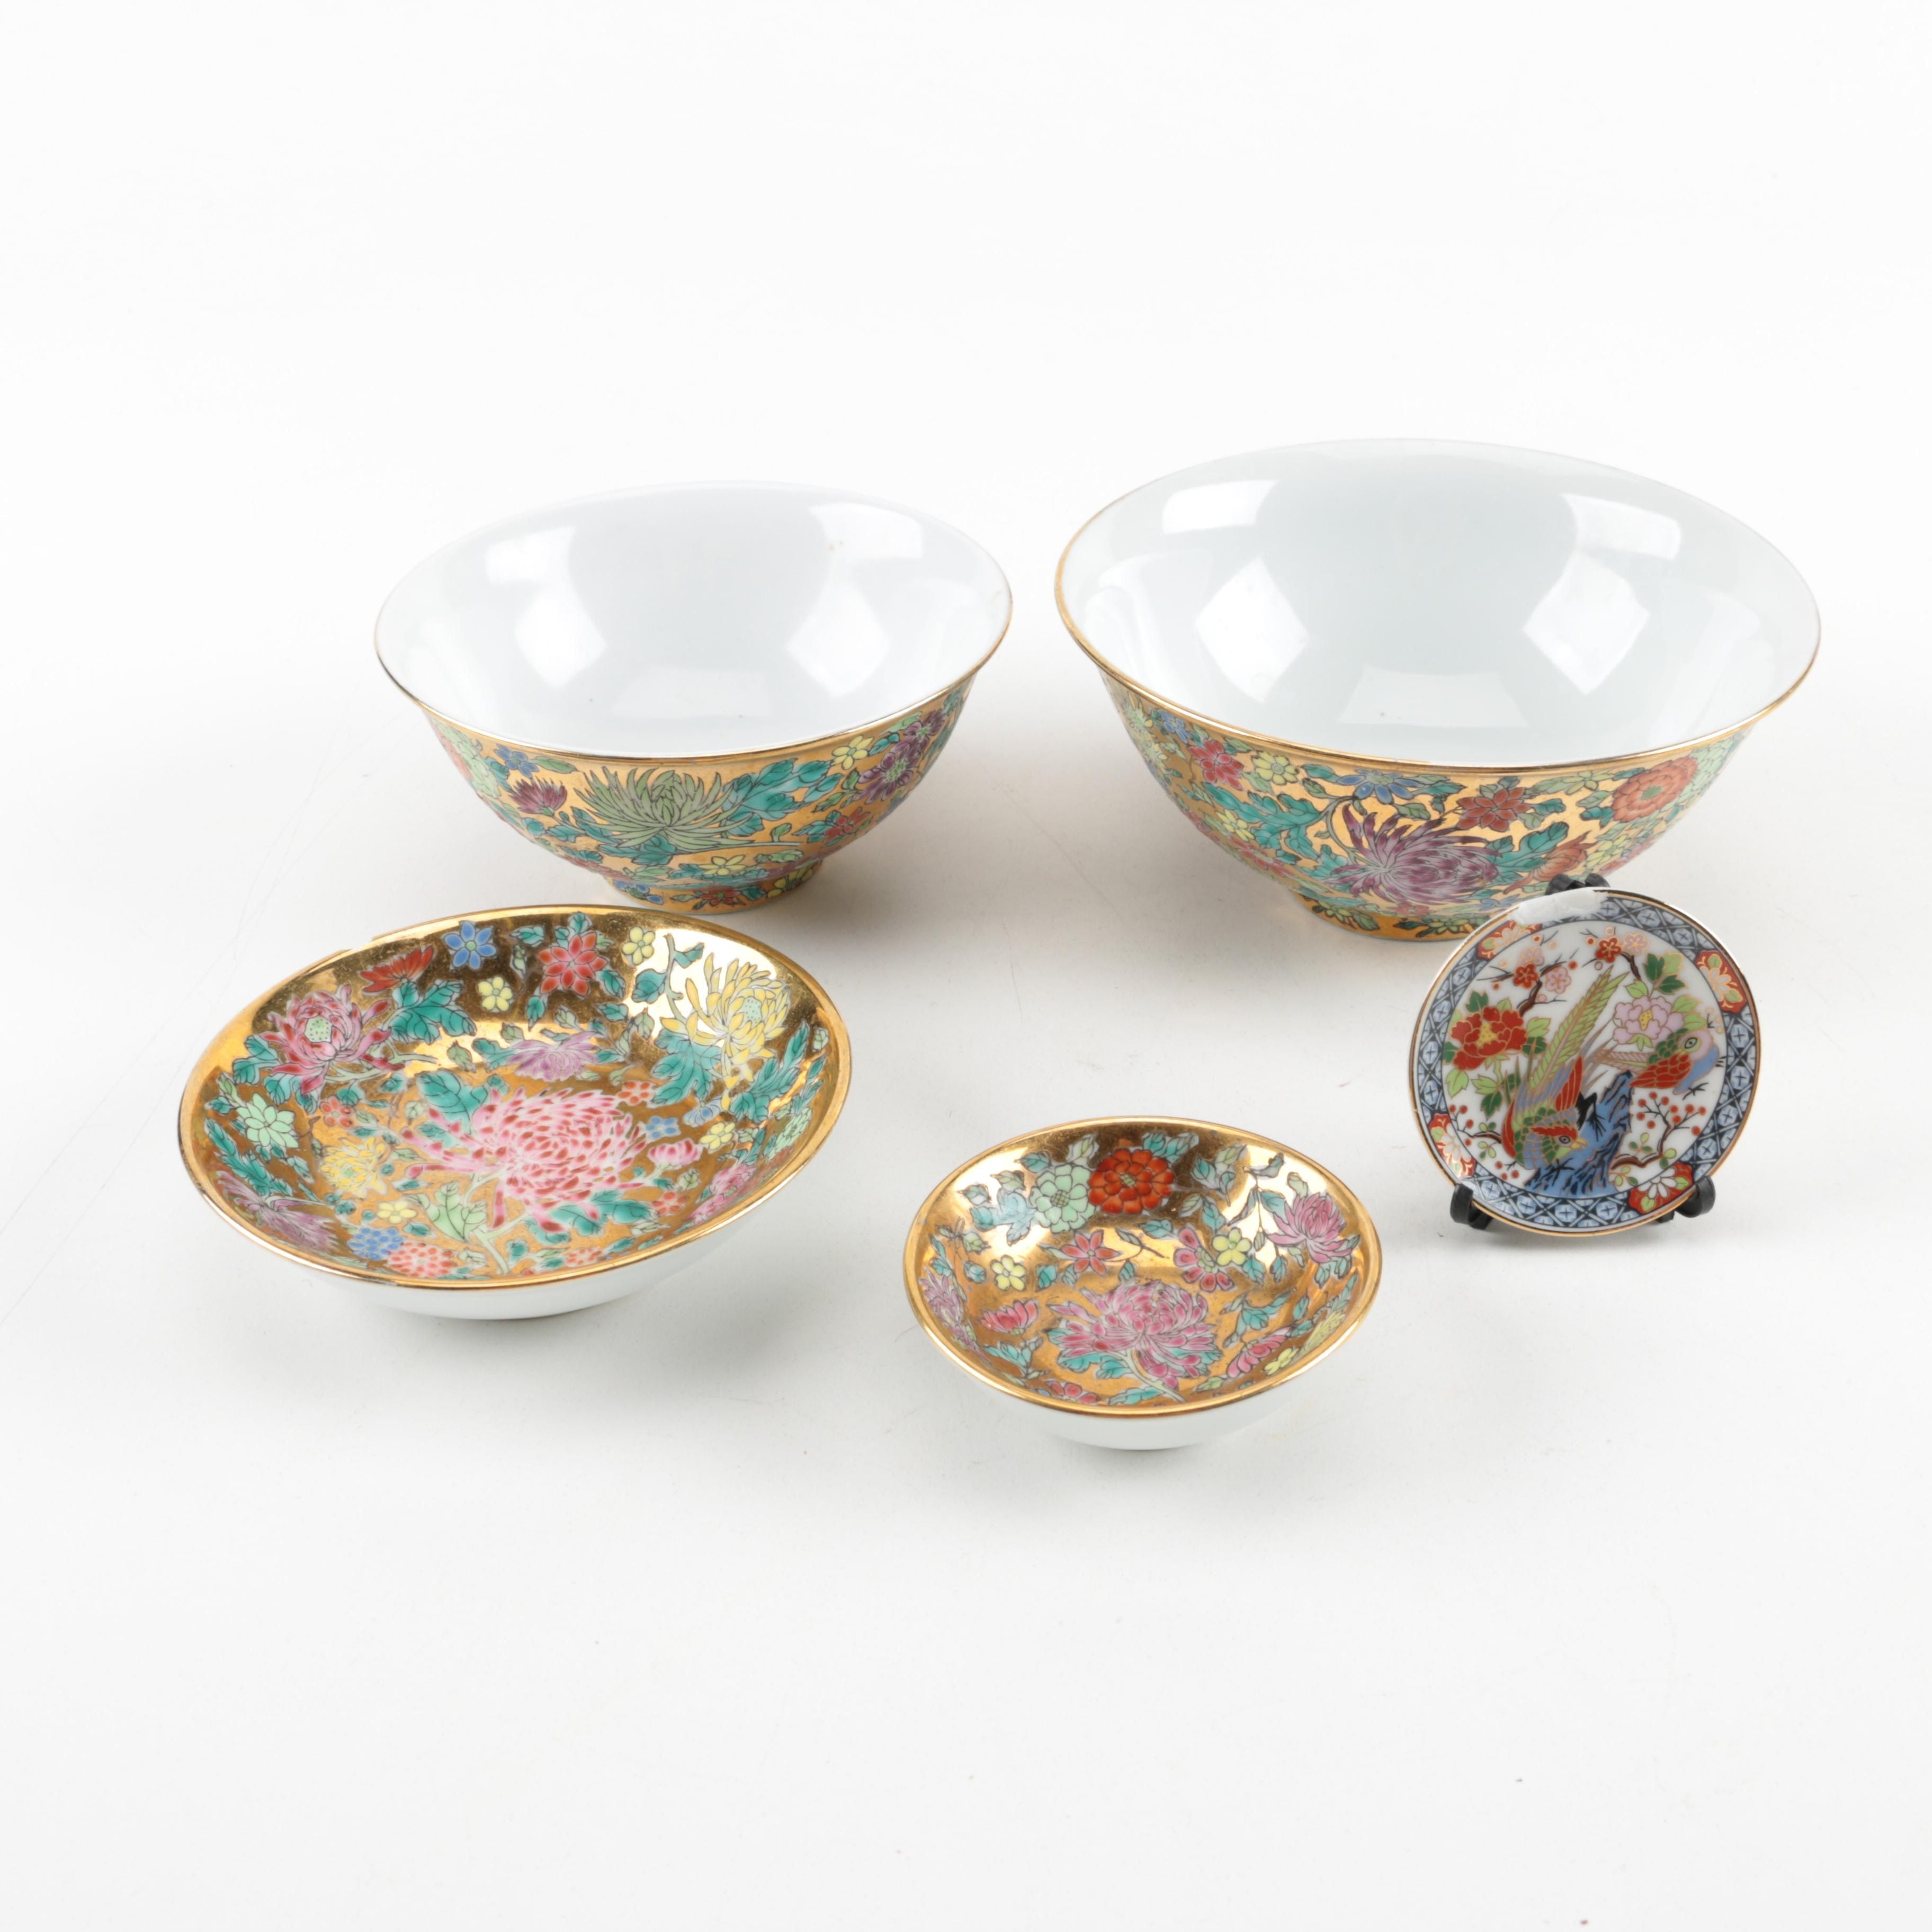 Chinese Porcelain Decorative Dishes